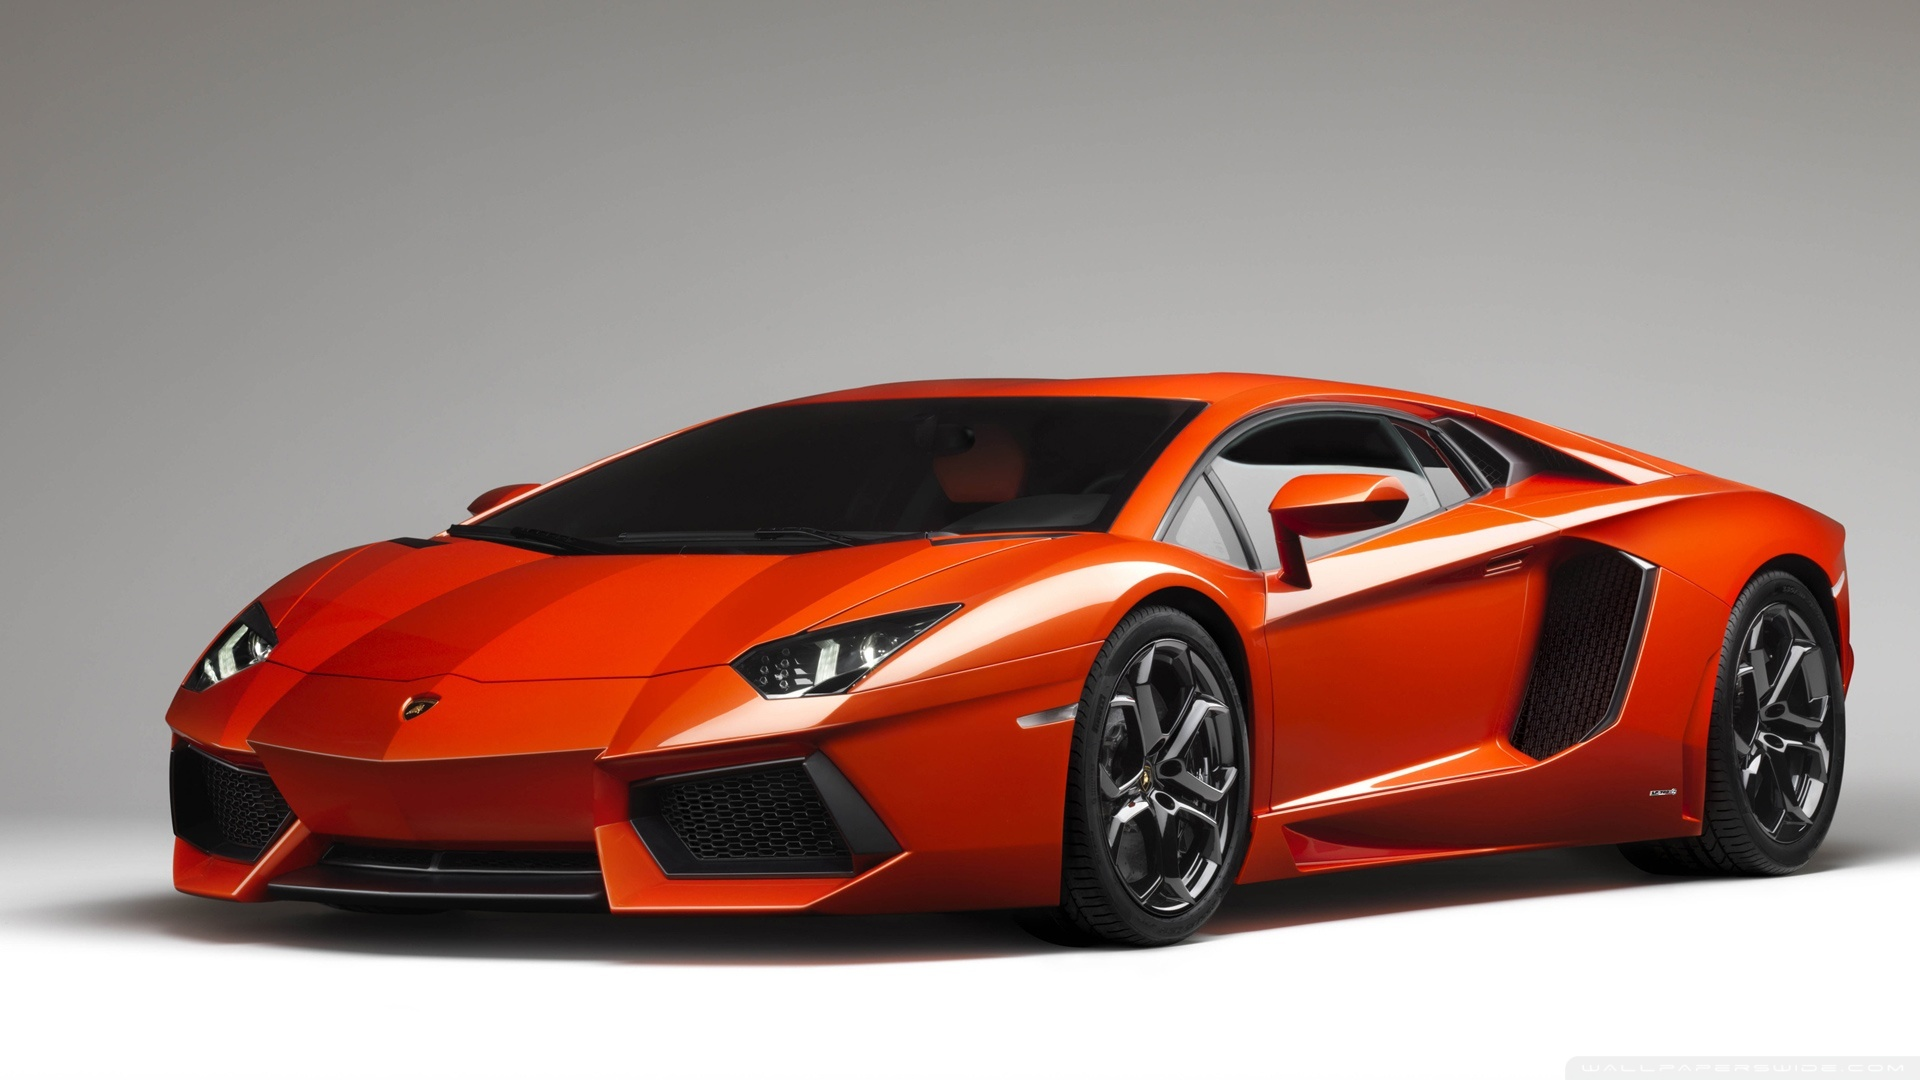 Orange Lamborghini Aventador HD Wide Wallpaper for Widescreen